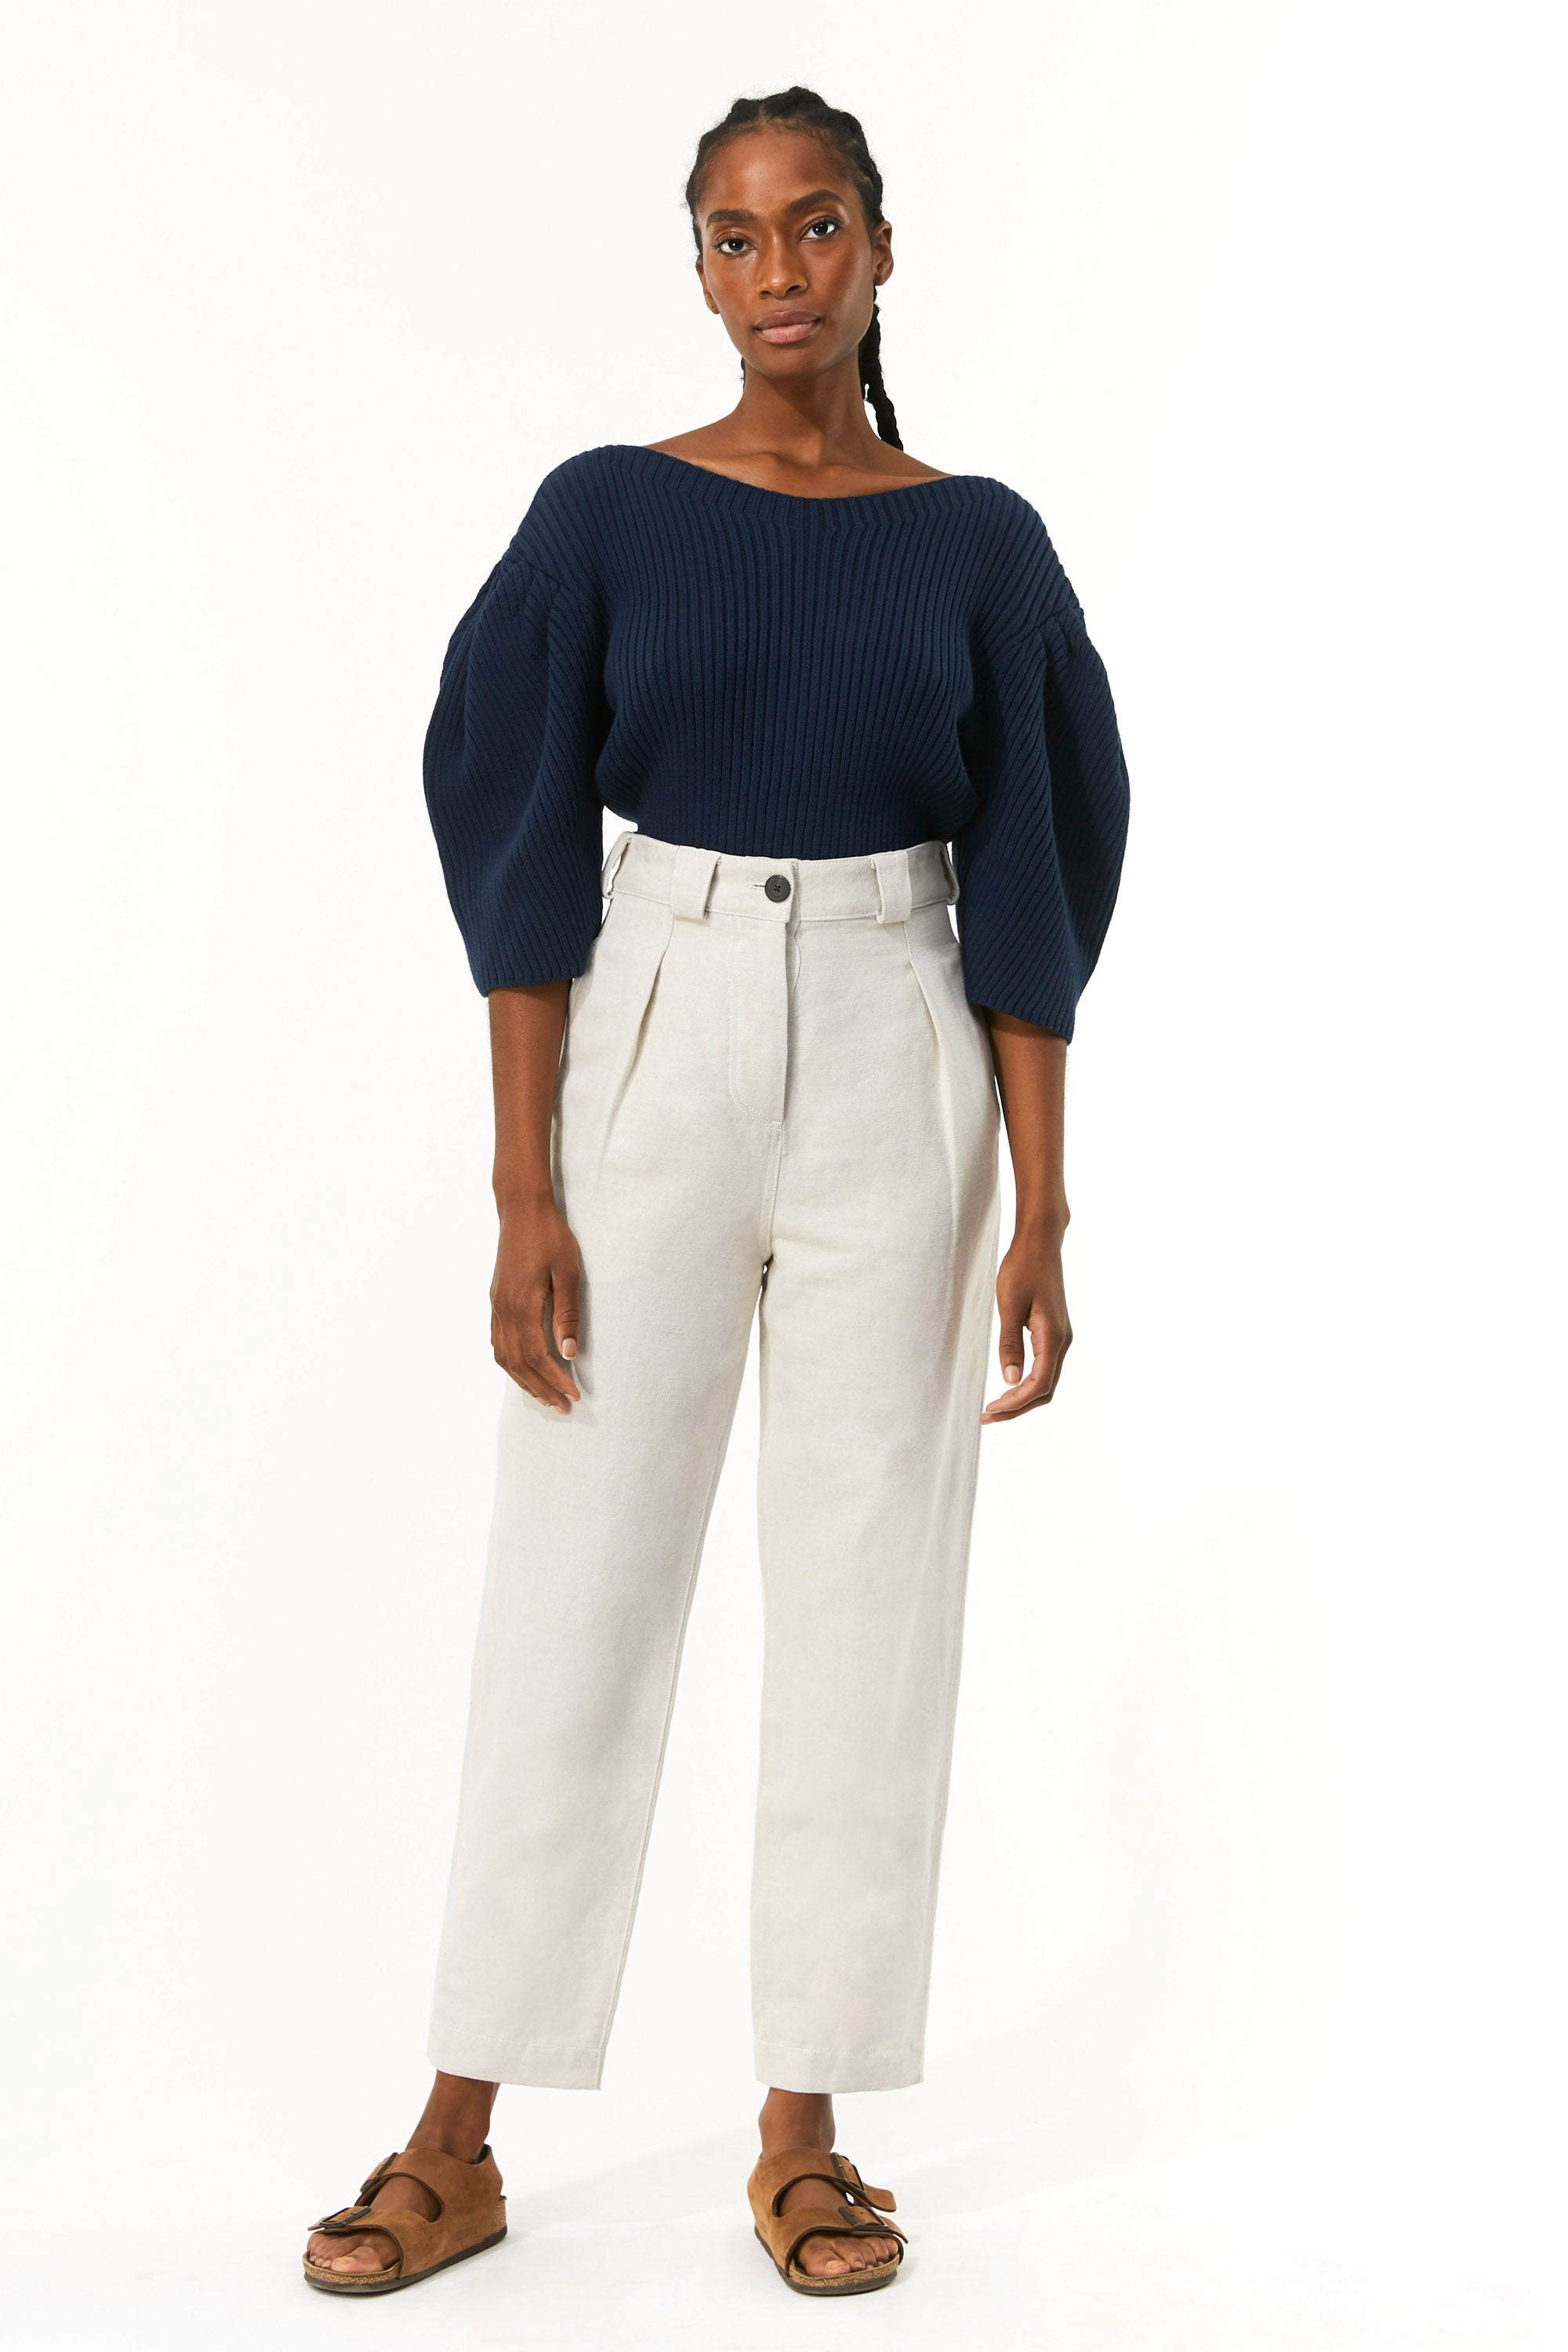 Mara Hoffman Beige Jade Pant in linen and organic cotton (front)